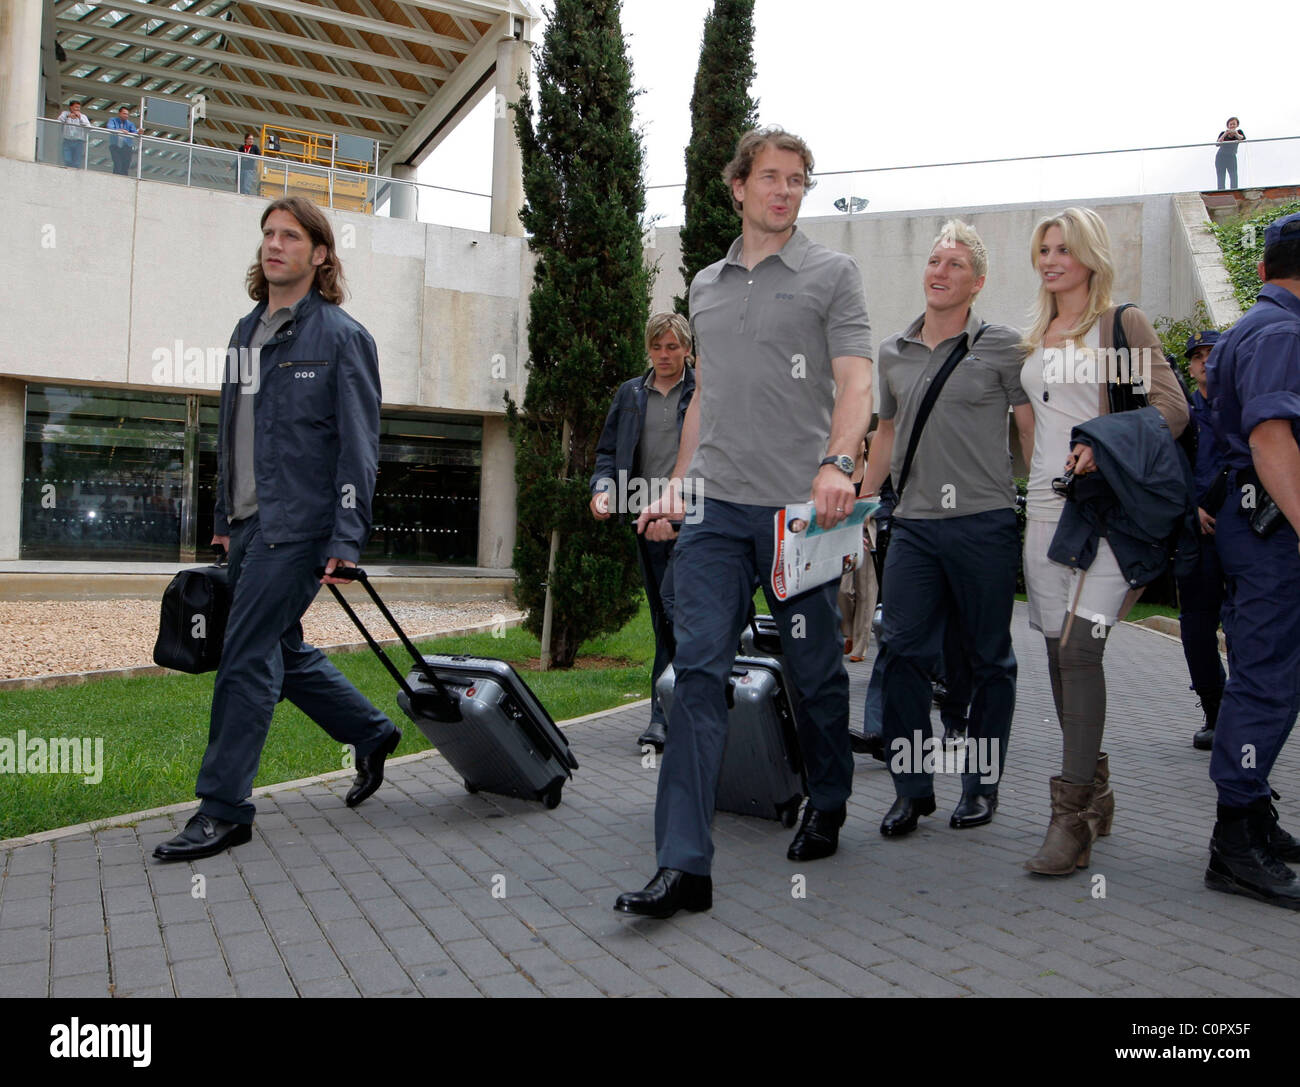 Torwart Jens Lehmann (3.v.re), Torsten Frings (li), Bastian Schweinsteiger and girlfriend Sarah Brandner  German - Stock Image